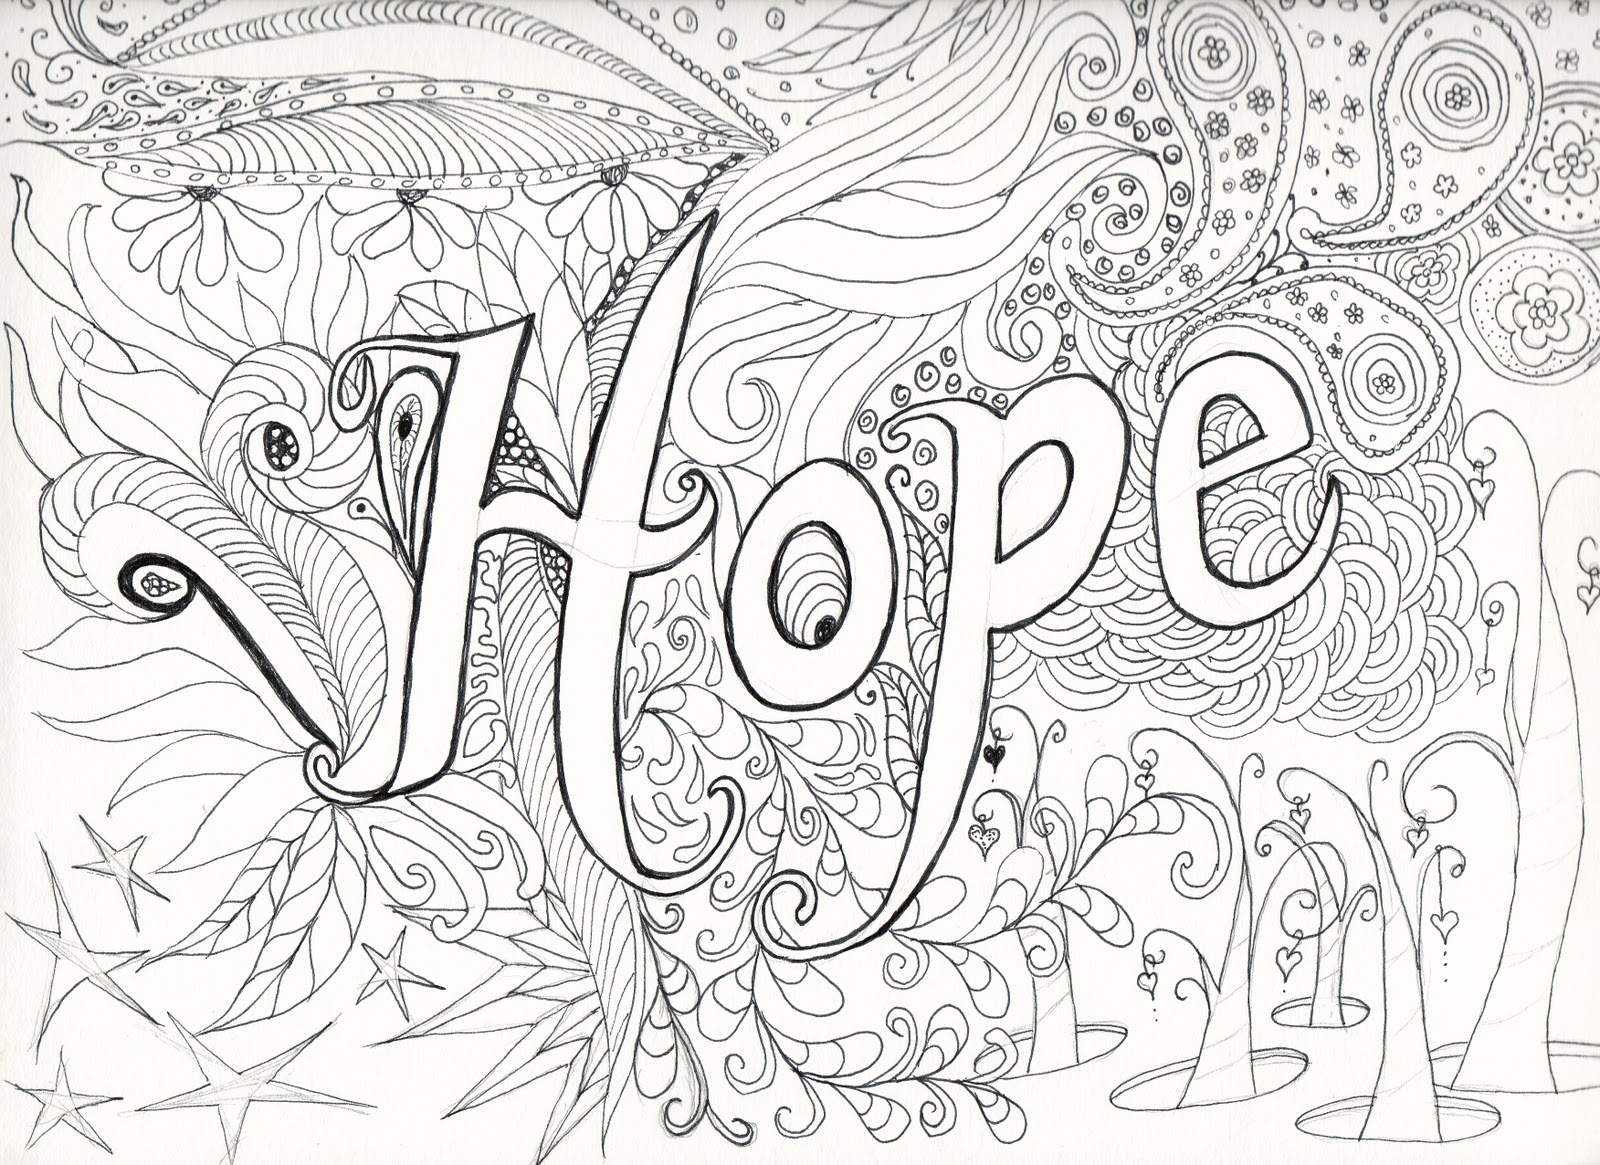 Complicated Coloring Pages to Print Download 1i - Free Download